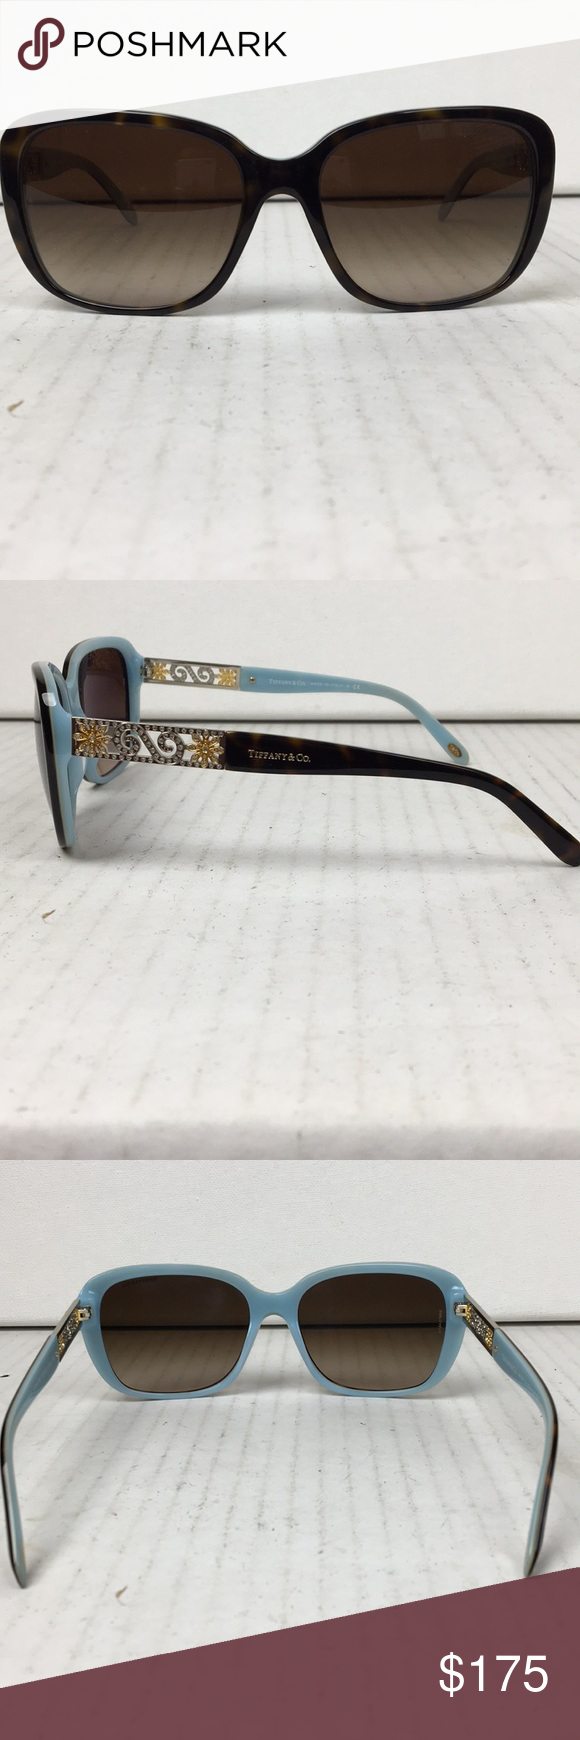 5b6335901bdd SUNGLASSES TIFFANY   CO. WOMENS SUNGLASSES EXCELLENT CONDITION BROWN WITH  TURQUOISE LINING BEAUTIFUL DETAILING WITH FLOWERS PERFECT FOR SUMMER PRICE  ...